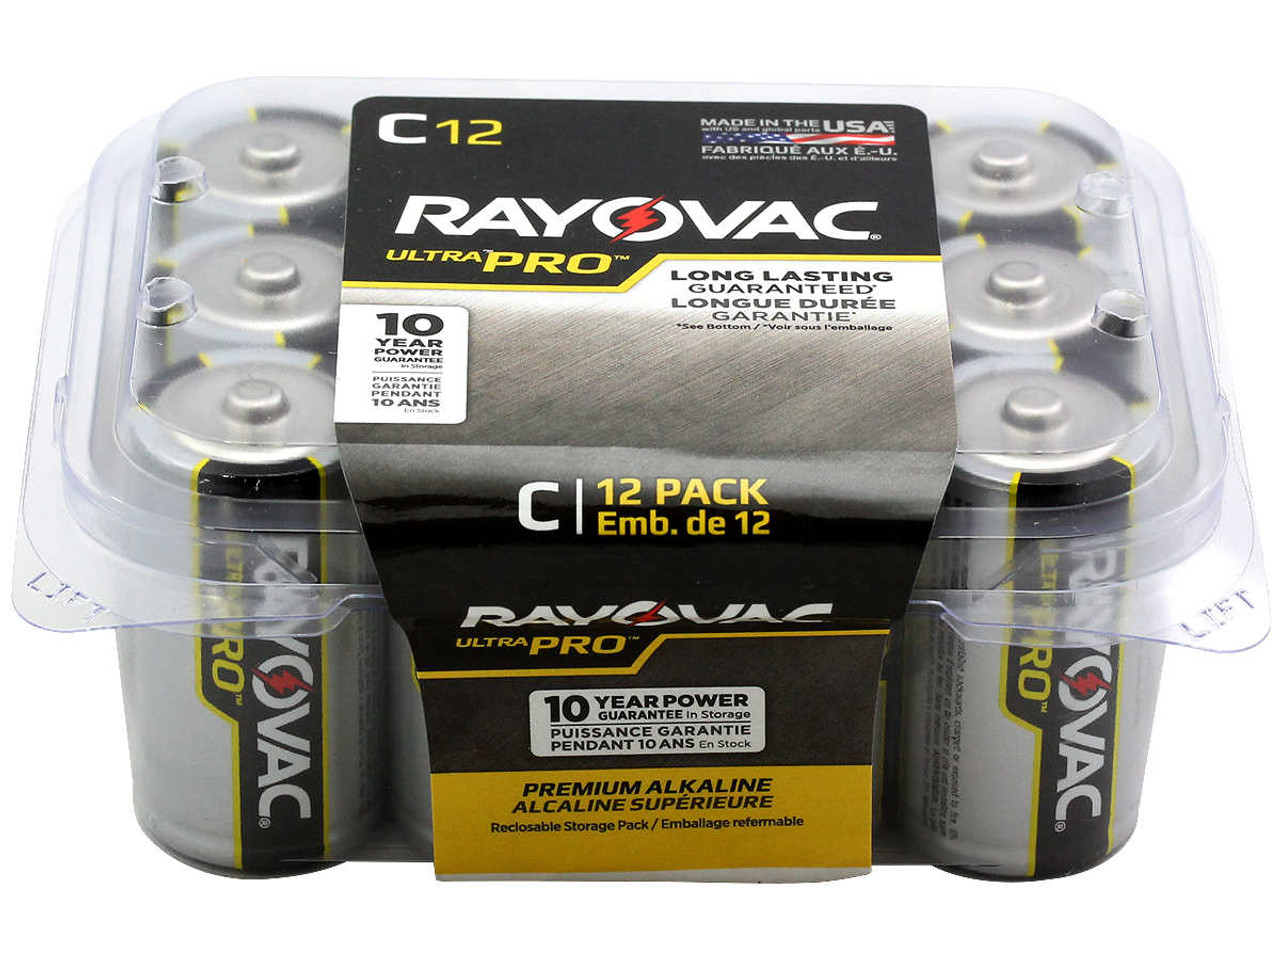 Rayovac Ultra Pro AL-C-12 1.5V Alkaline Button Top Batteries - 12 Pack (ALC-12PPC)